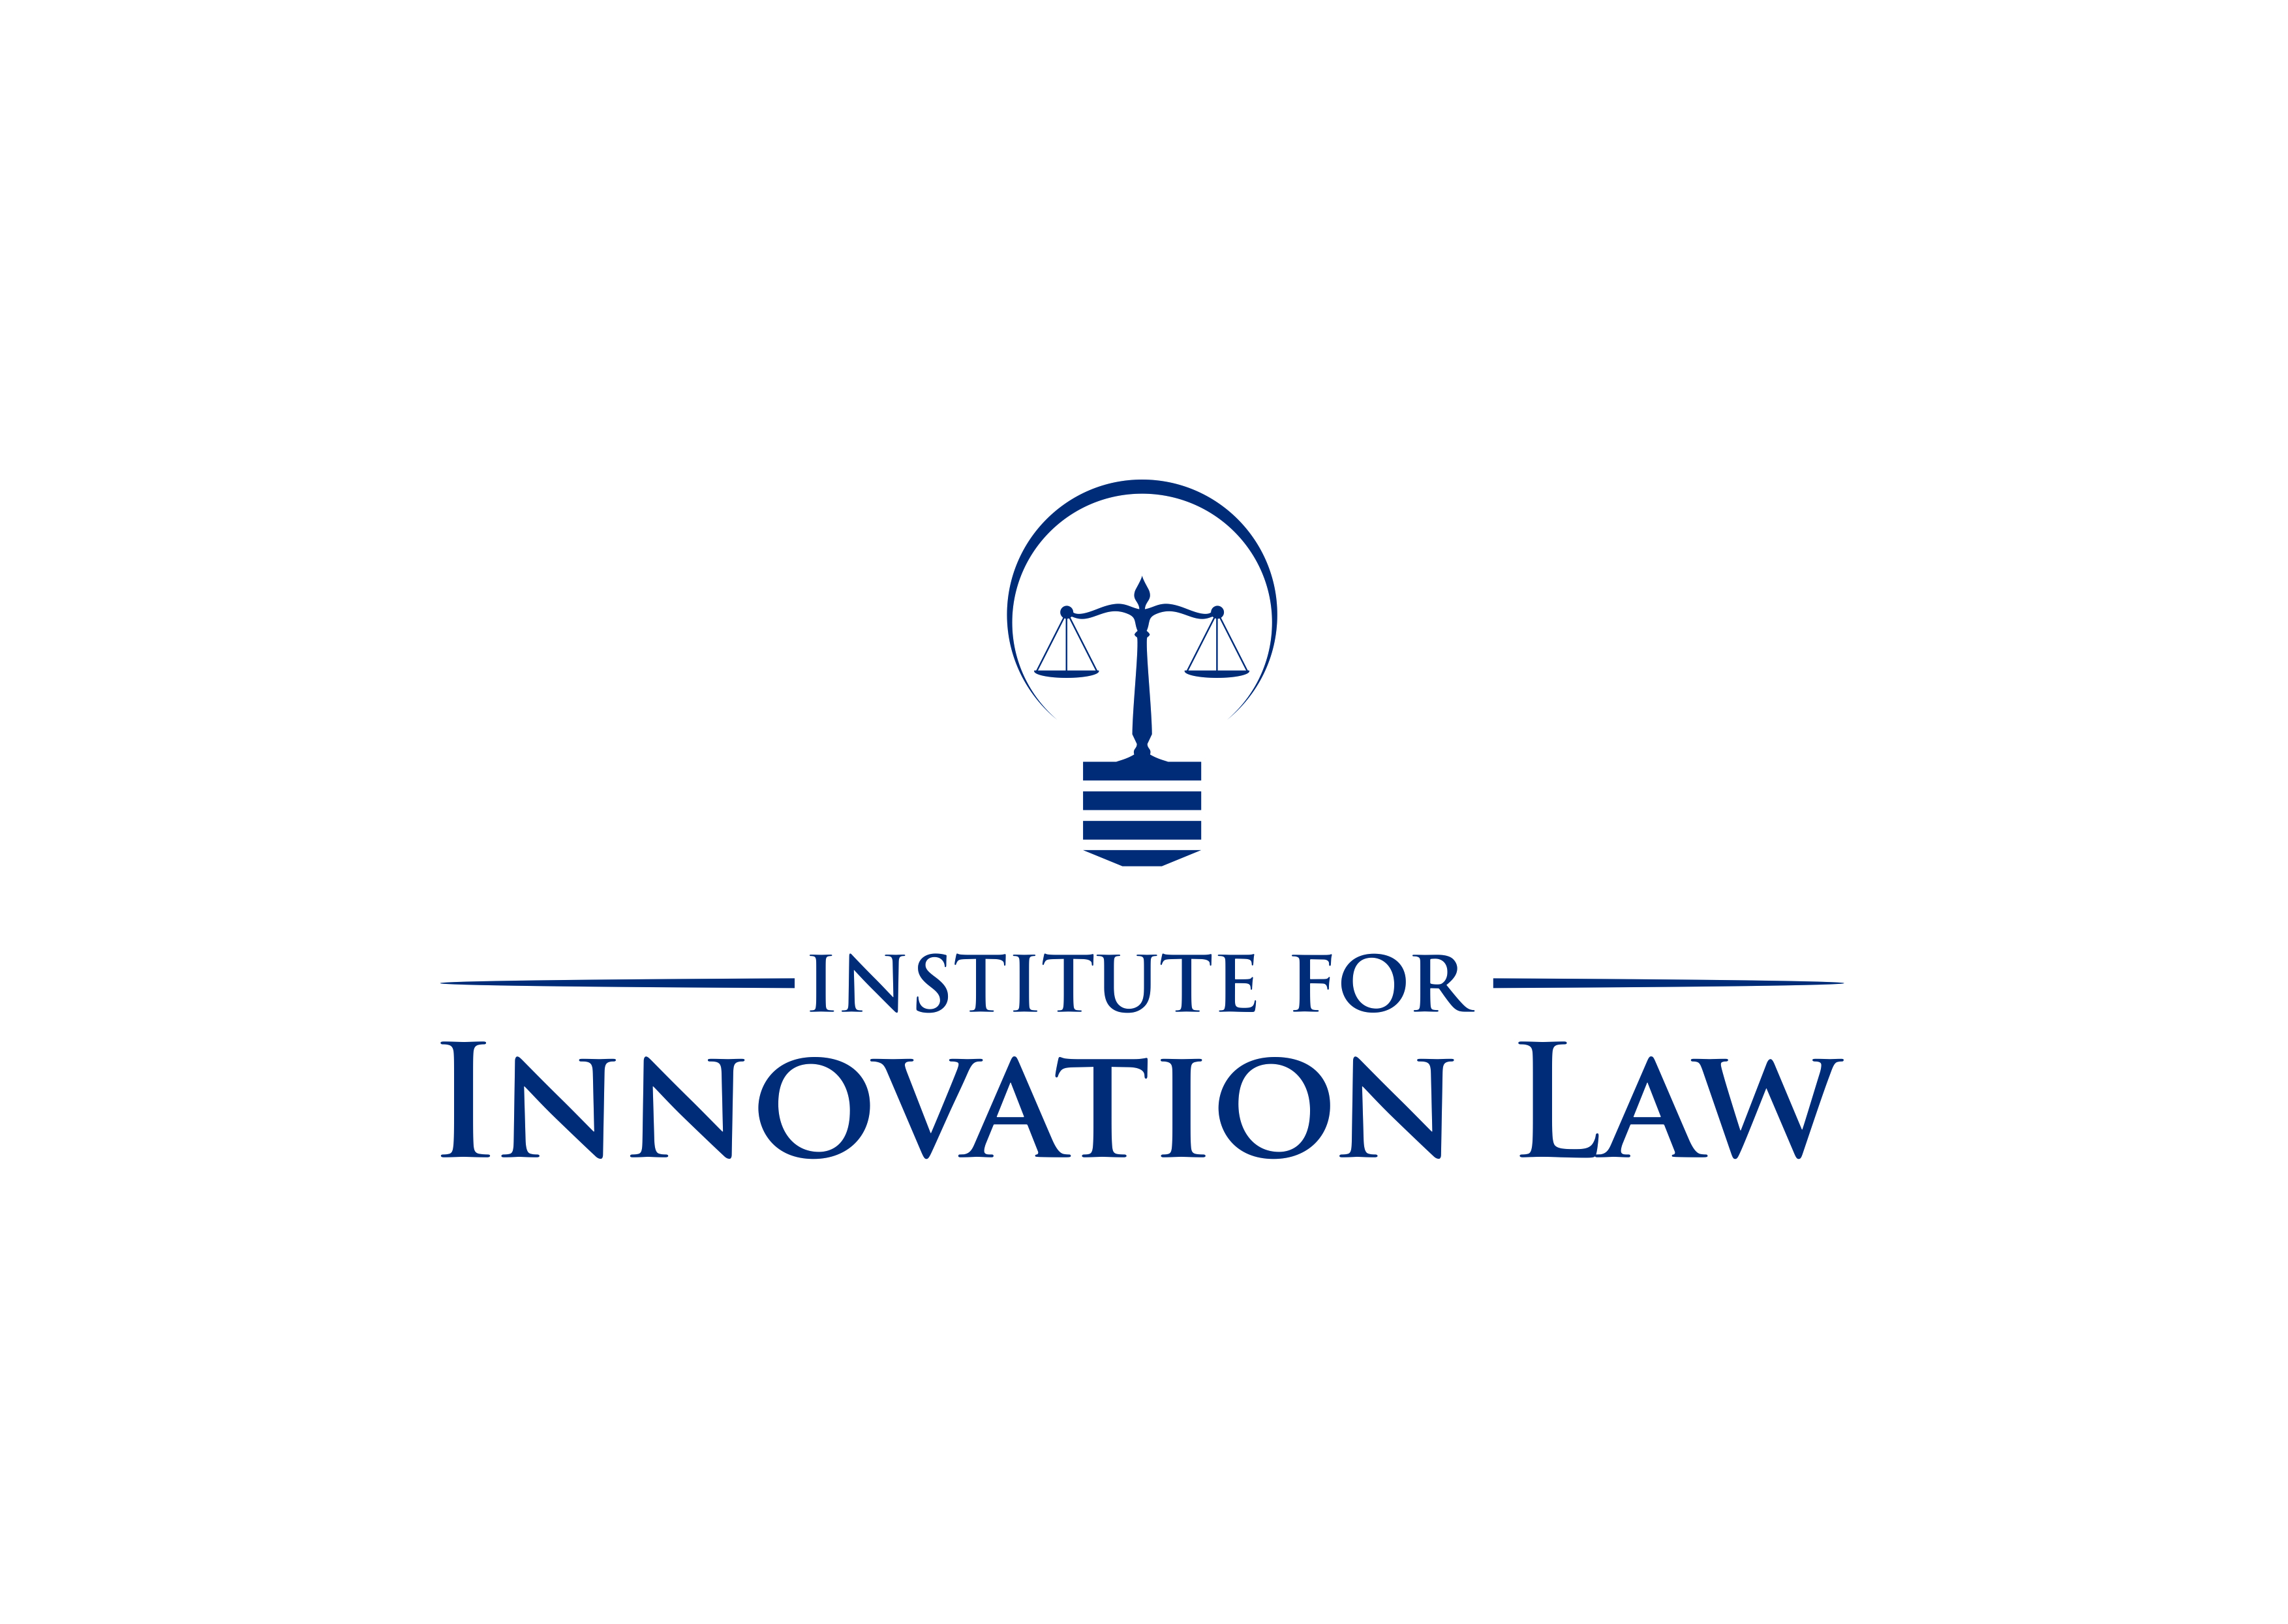 sponsorship logo uc hastings innovation and law